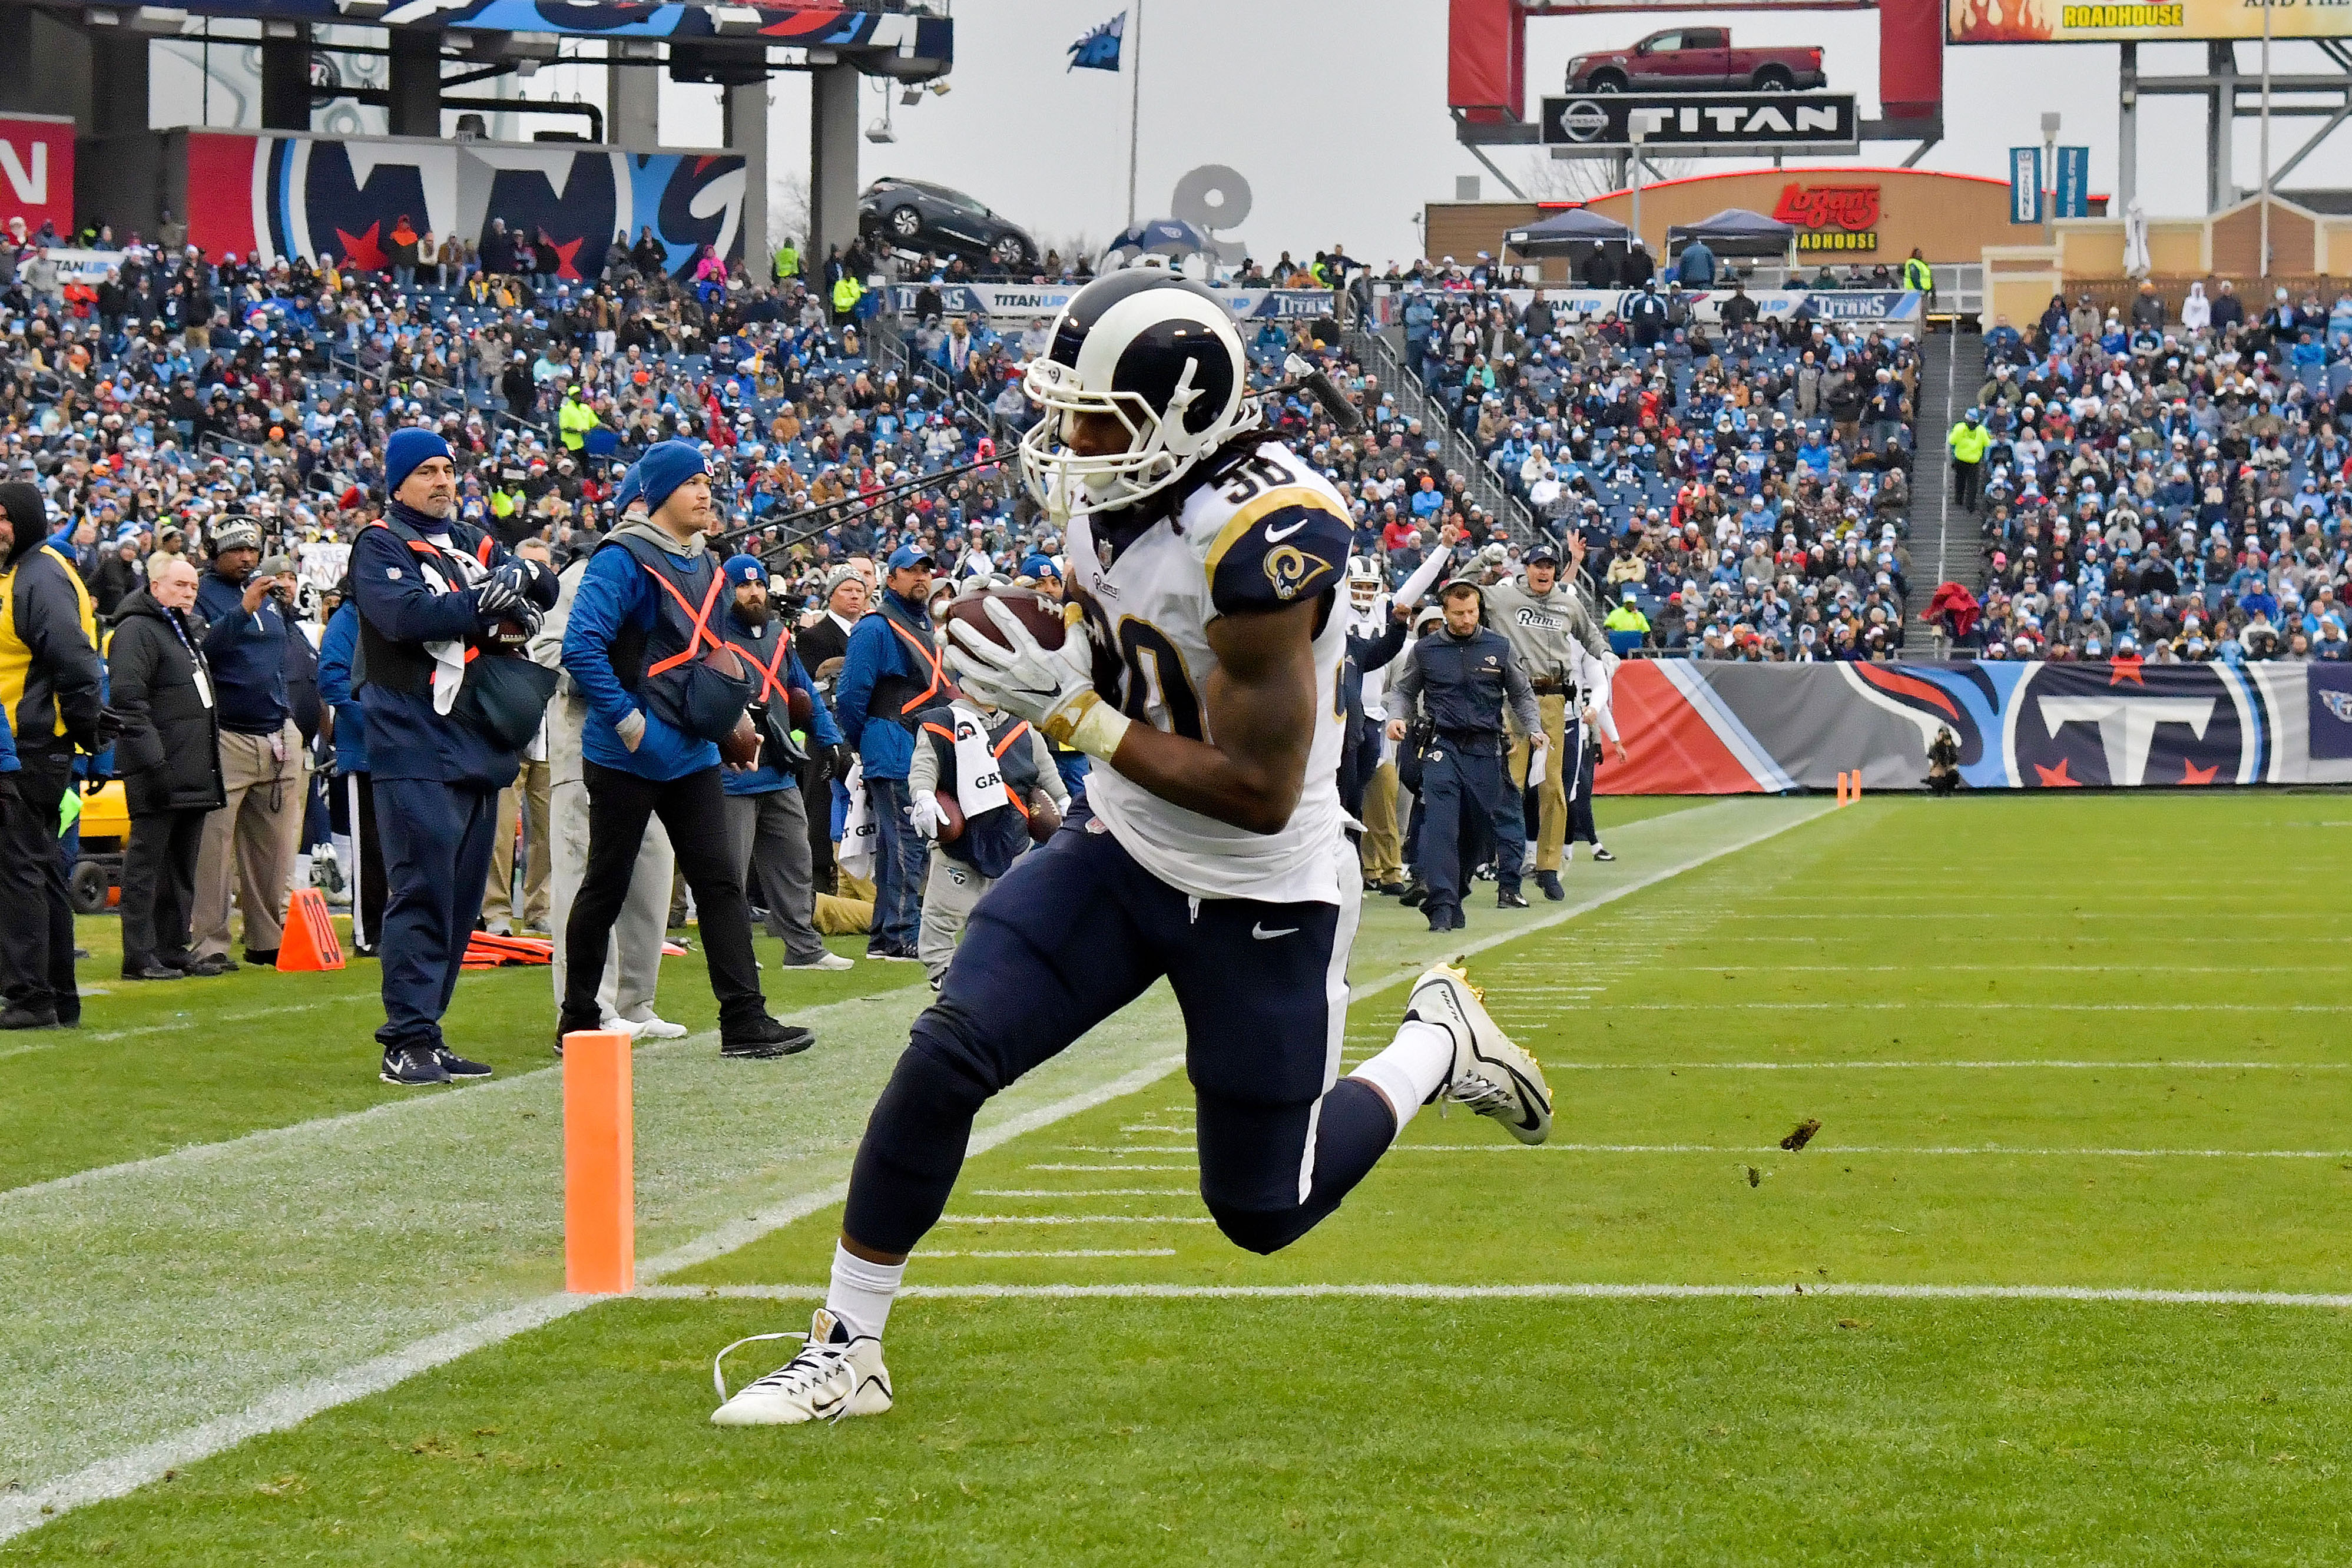 Los Angeles Rams RB Todd Gurley scores his first touchdown against Tennessee Titans in Week 16